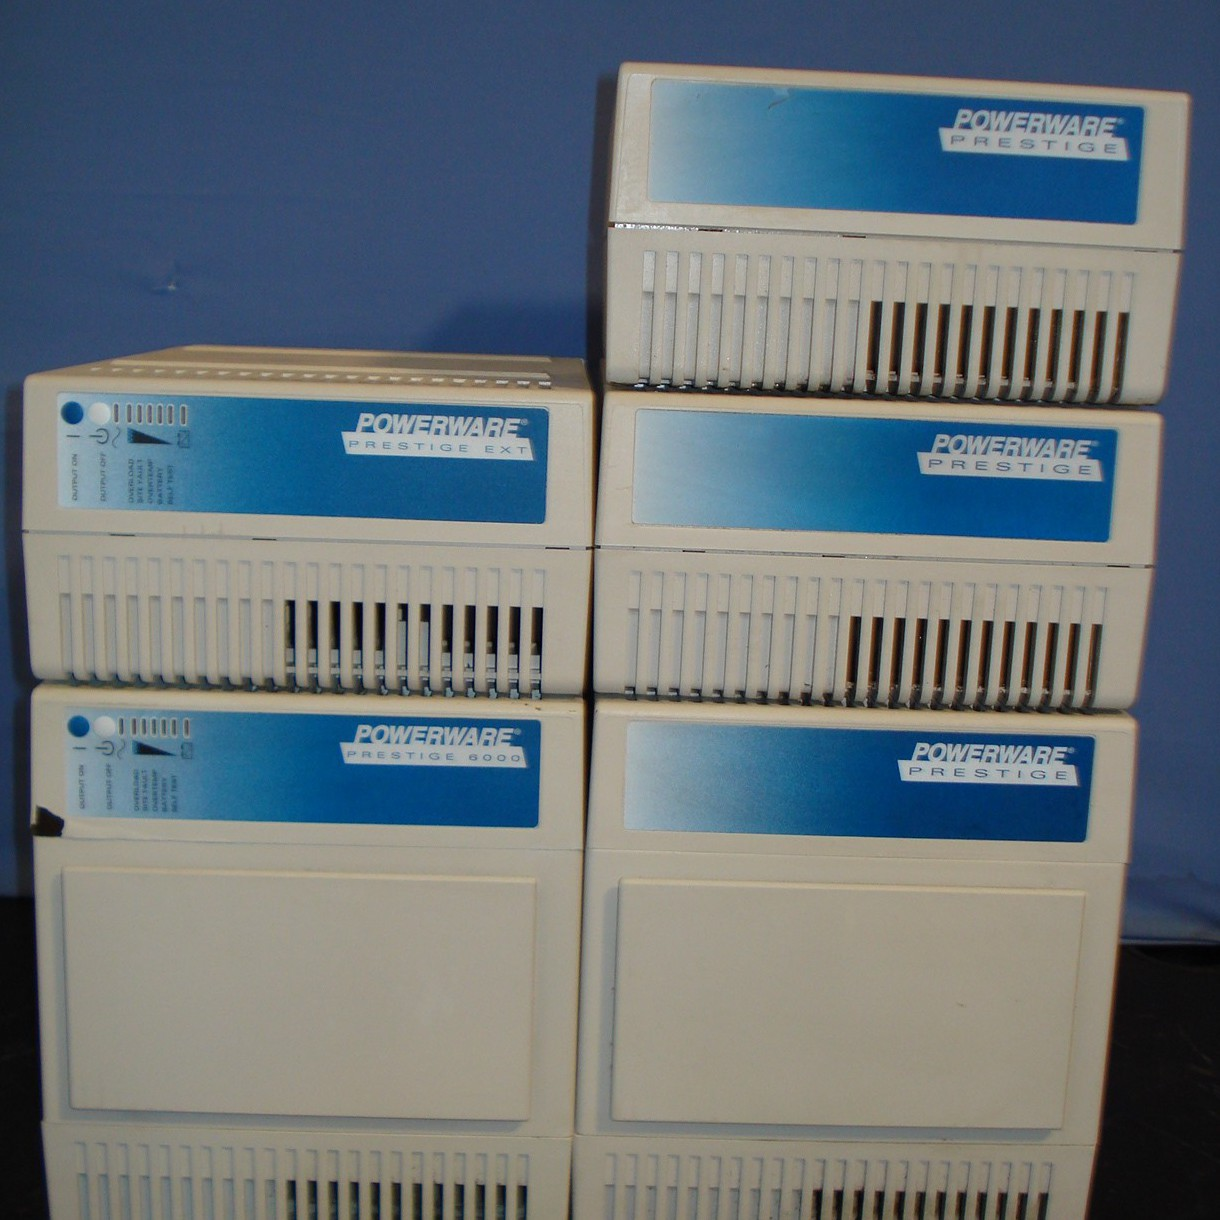 Powerware Prestige 6000 Power Supply & Cabinets Image